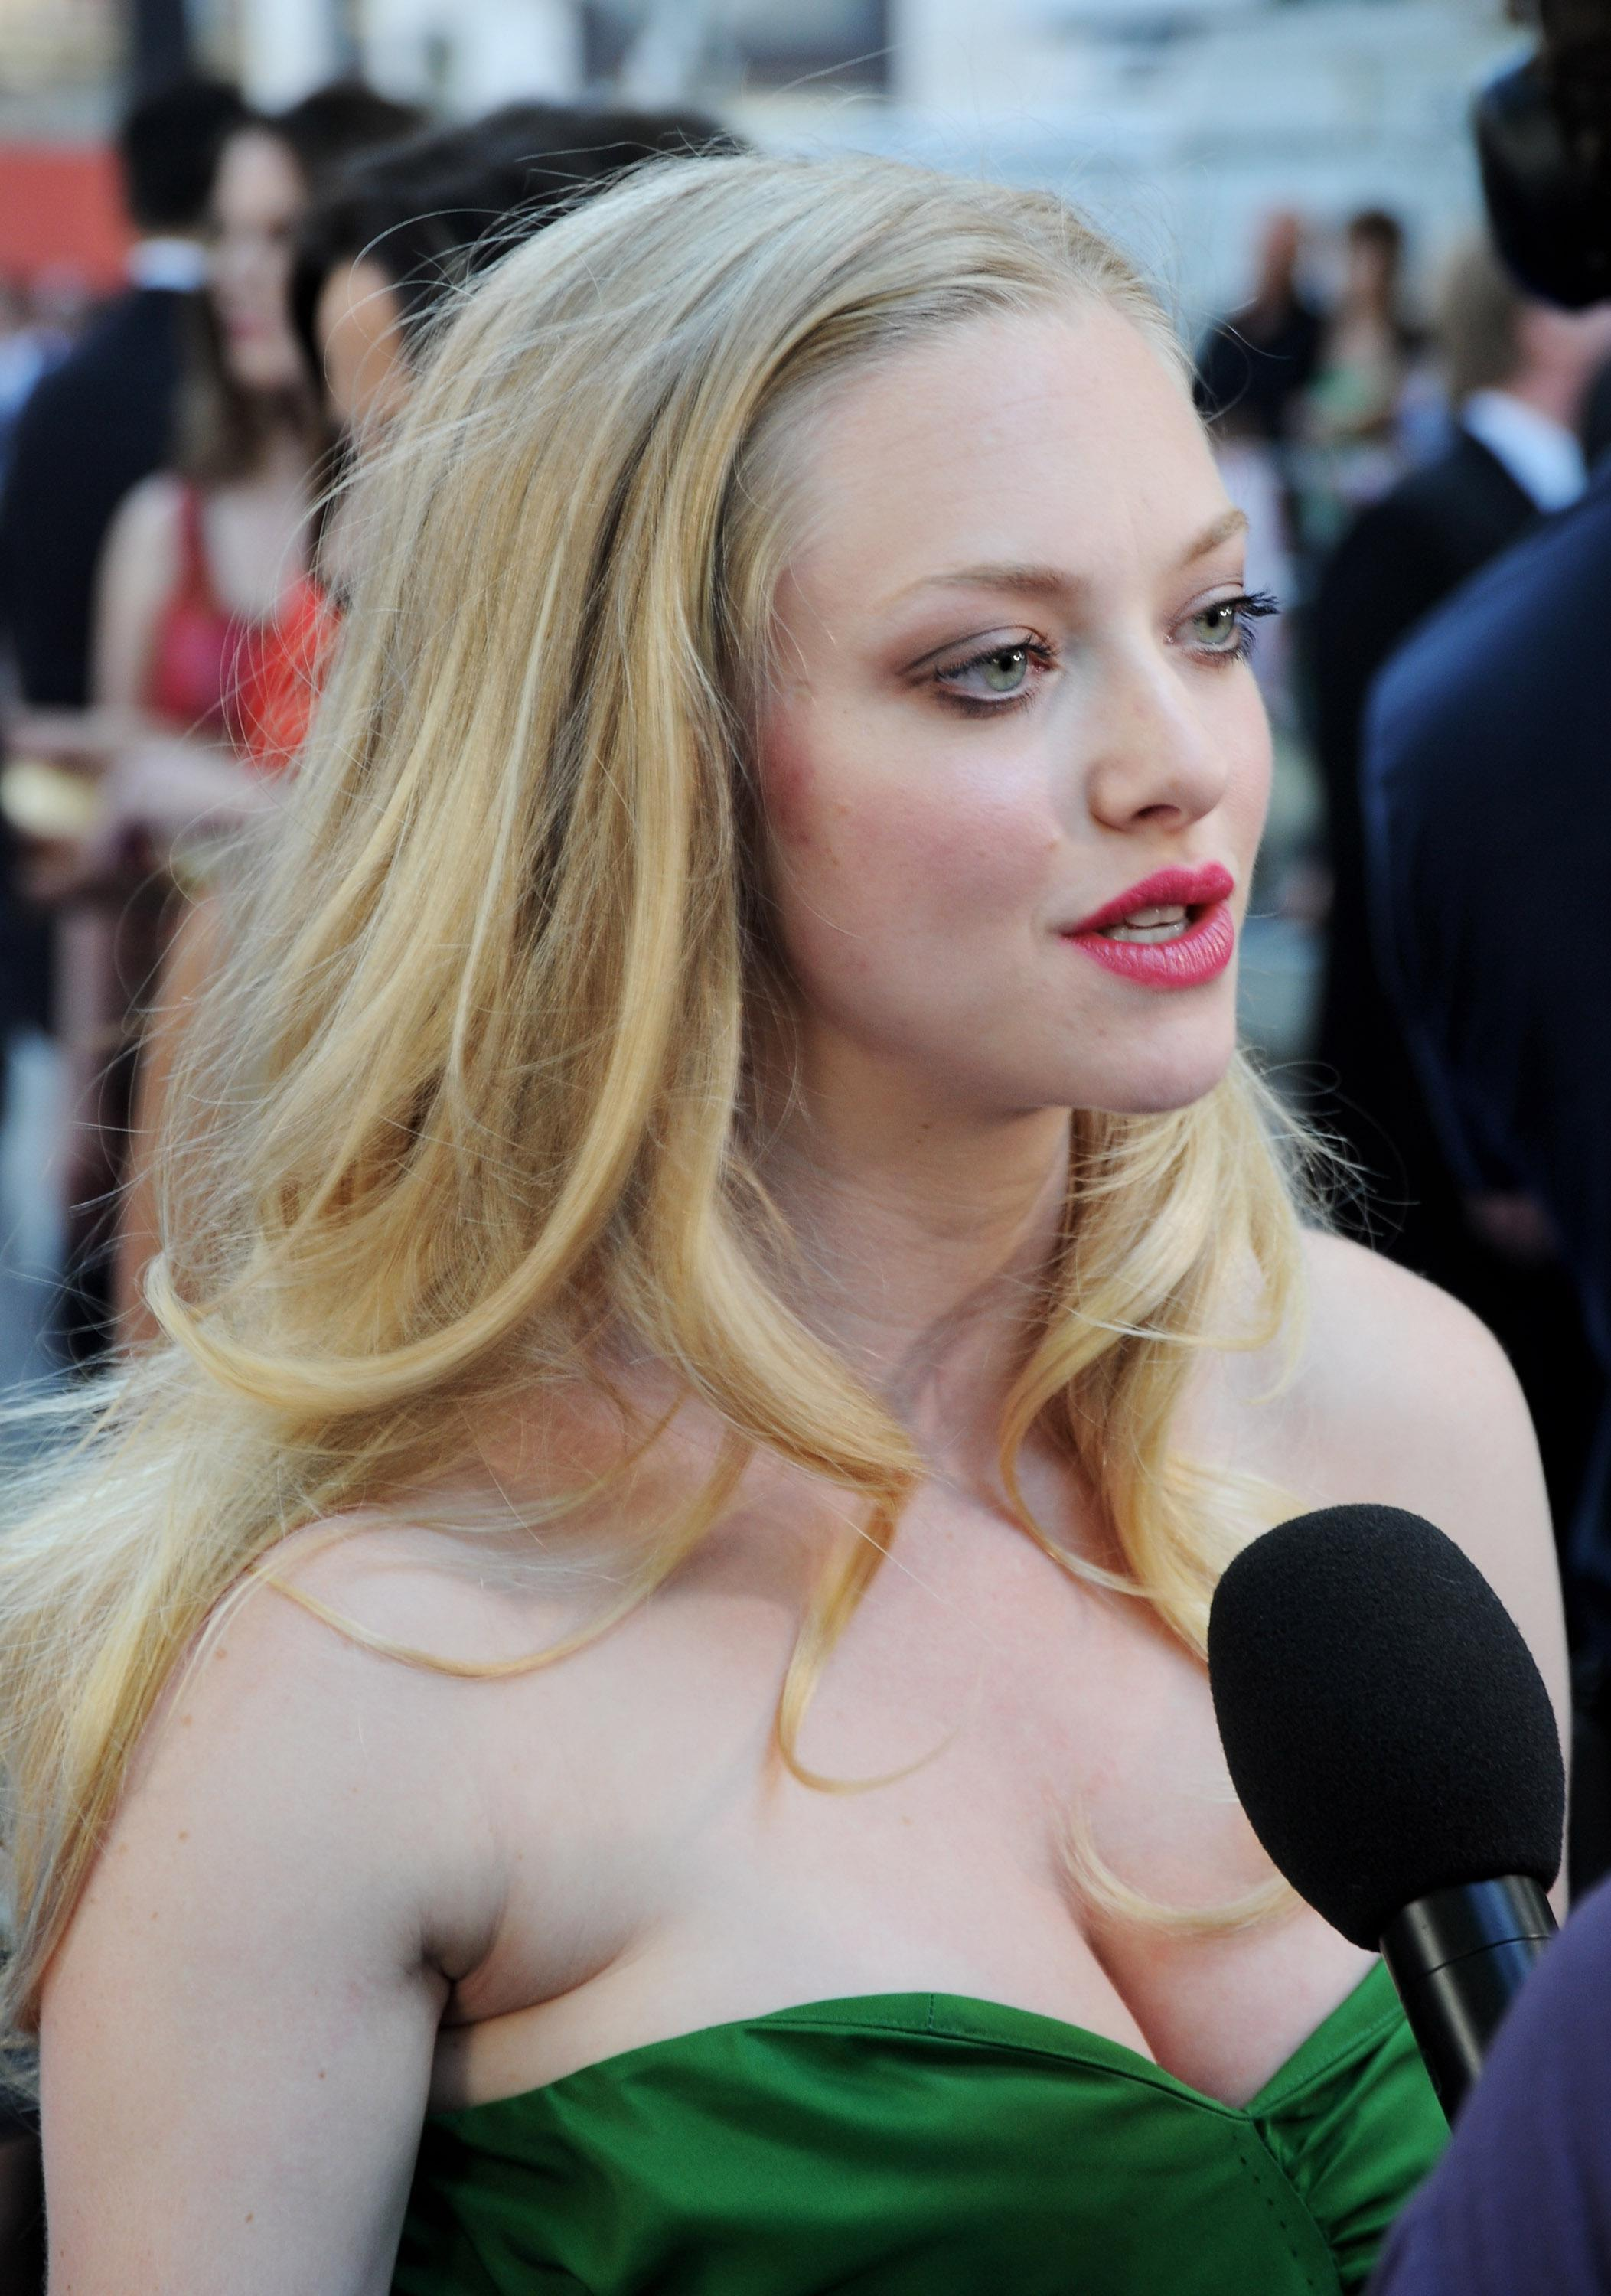 Amanda Seyfried Nude - Page 14 Pictures, Naked, Oops -4352